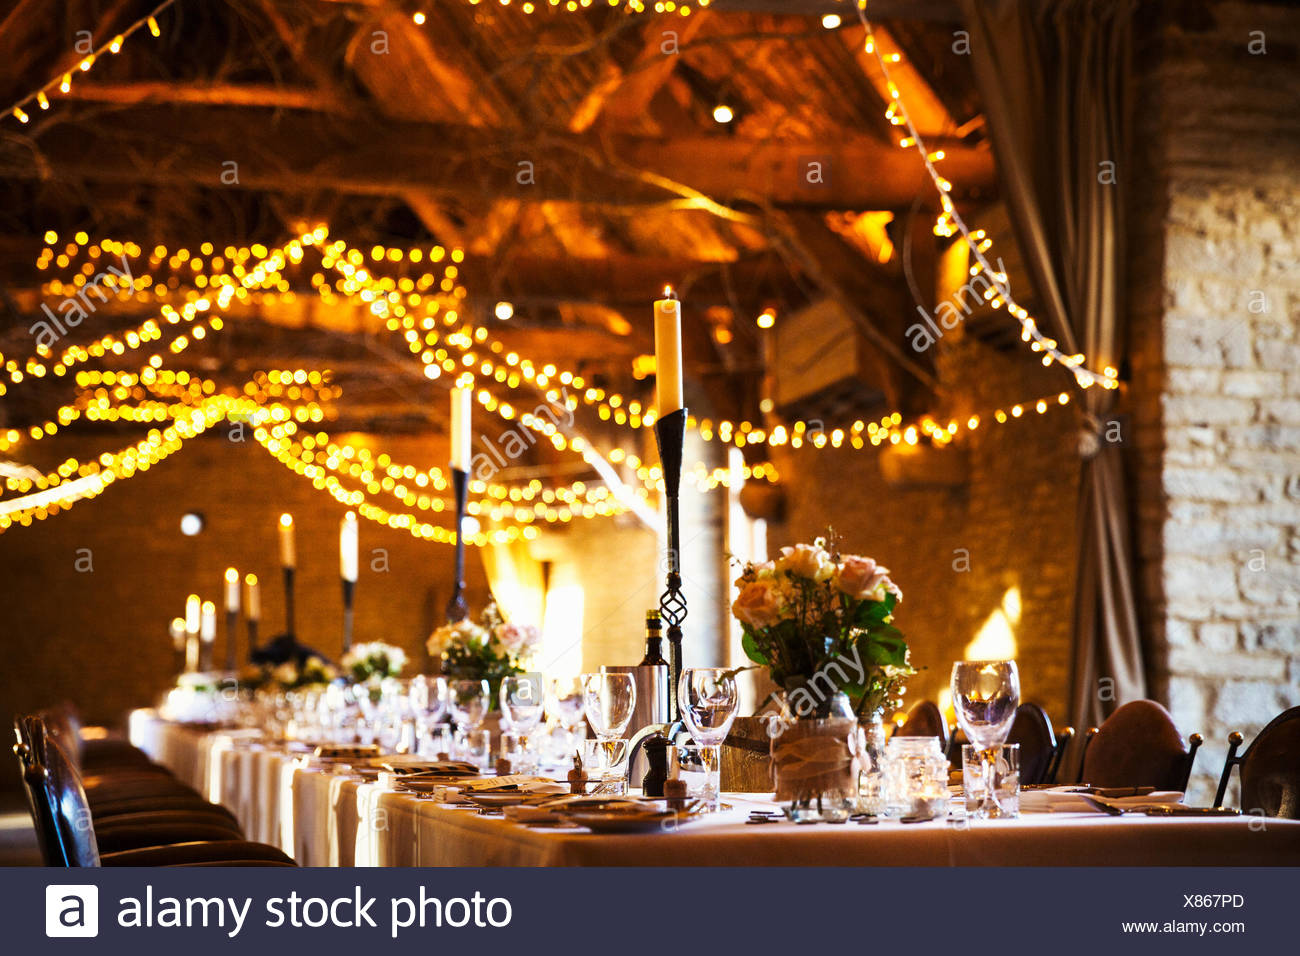 A Wedding Venue Decorated For A Party With Fairy Lights And The